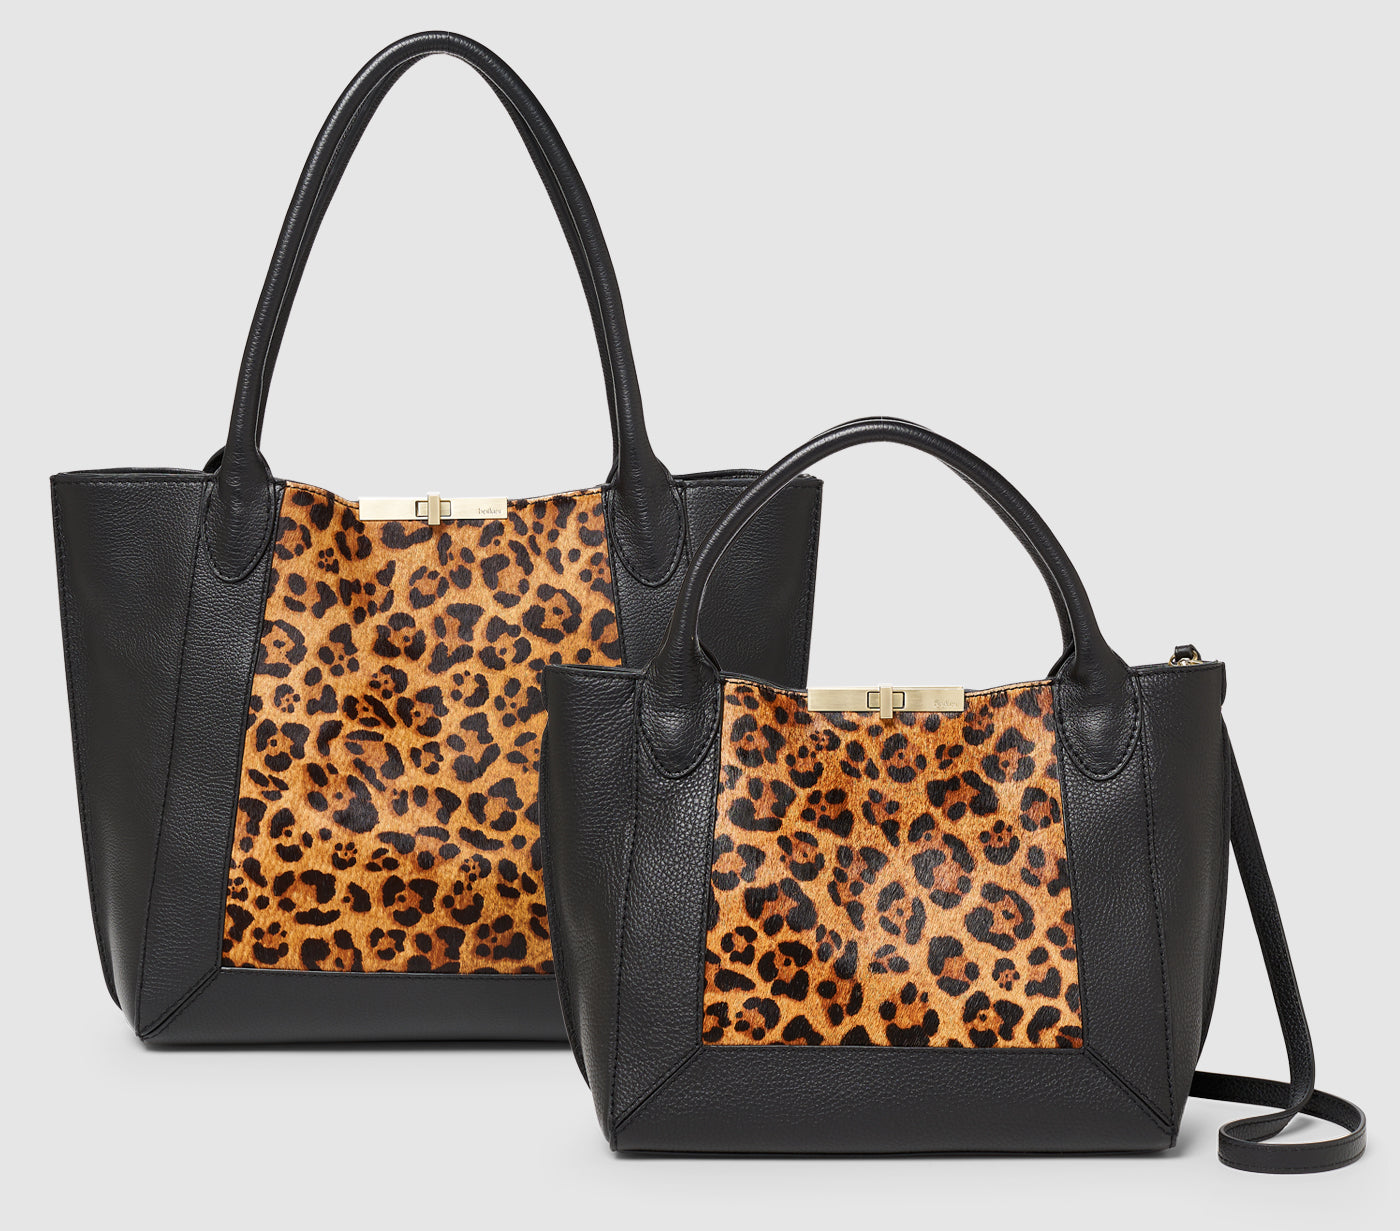 Perry Large Tote + Perry Small Tote